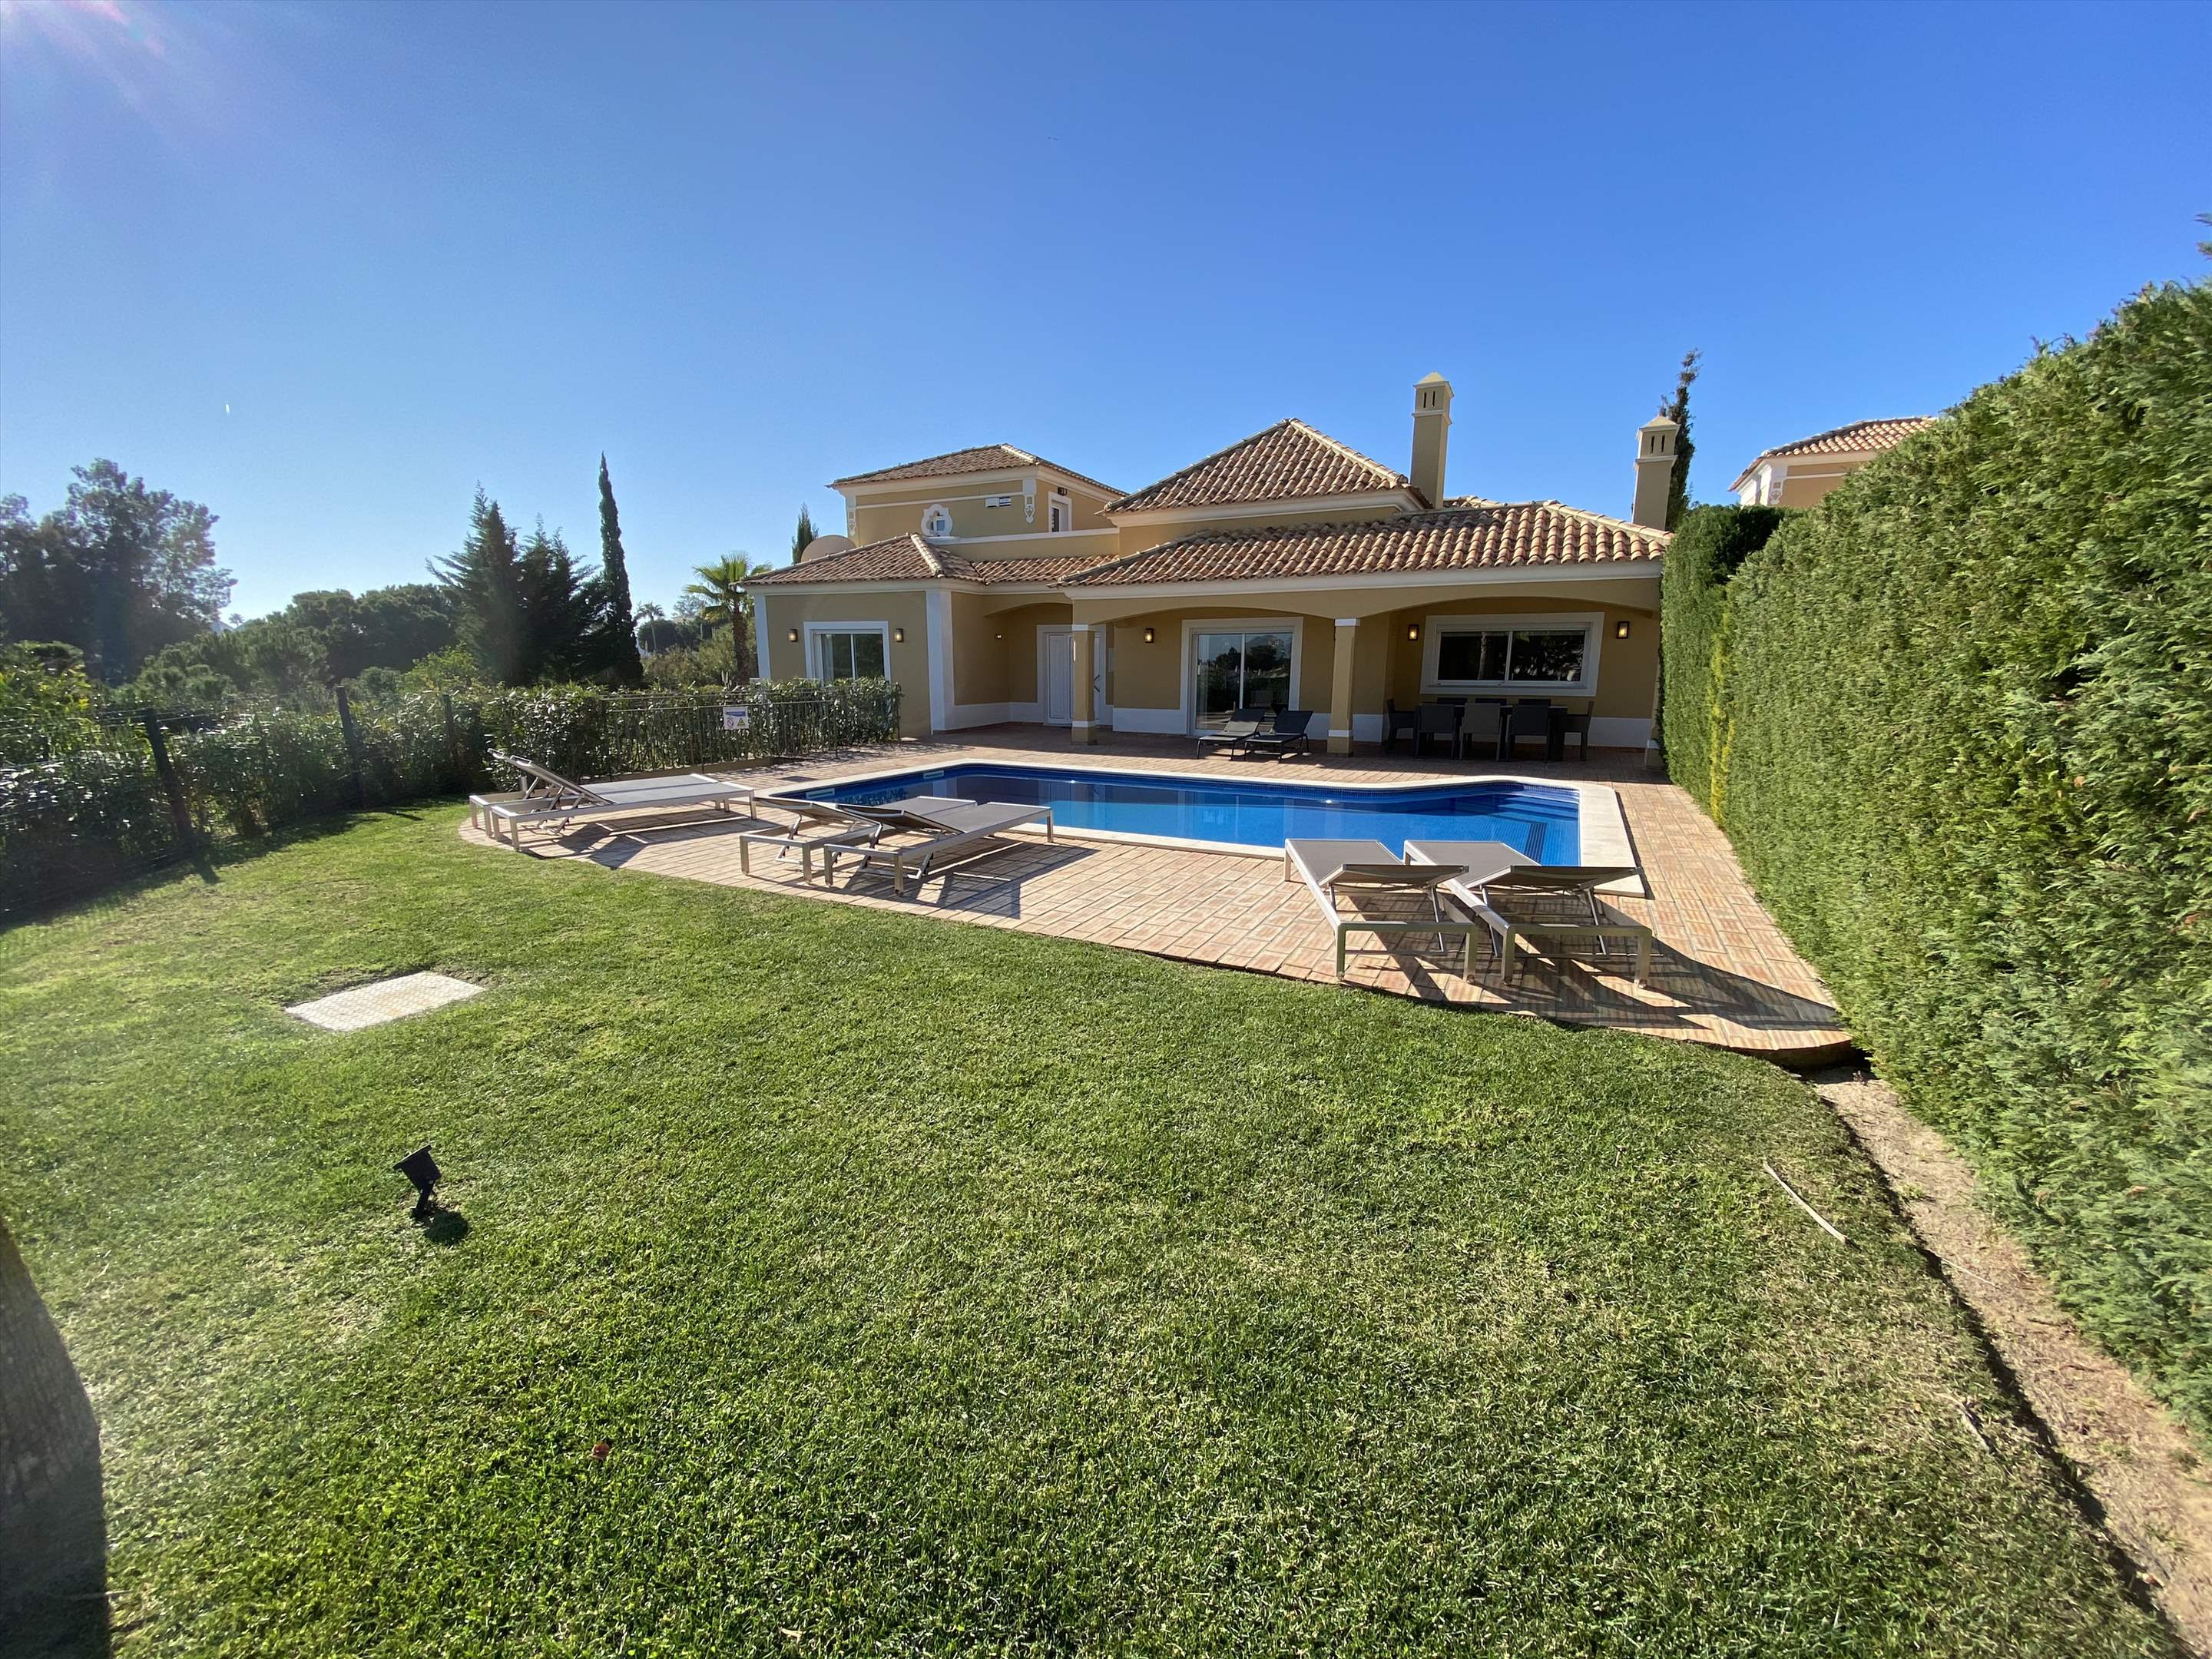 The Ocean Villas, 5 bedroom villa in Gale, Vale da Parra and Guia, Algarve Photo #39